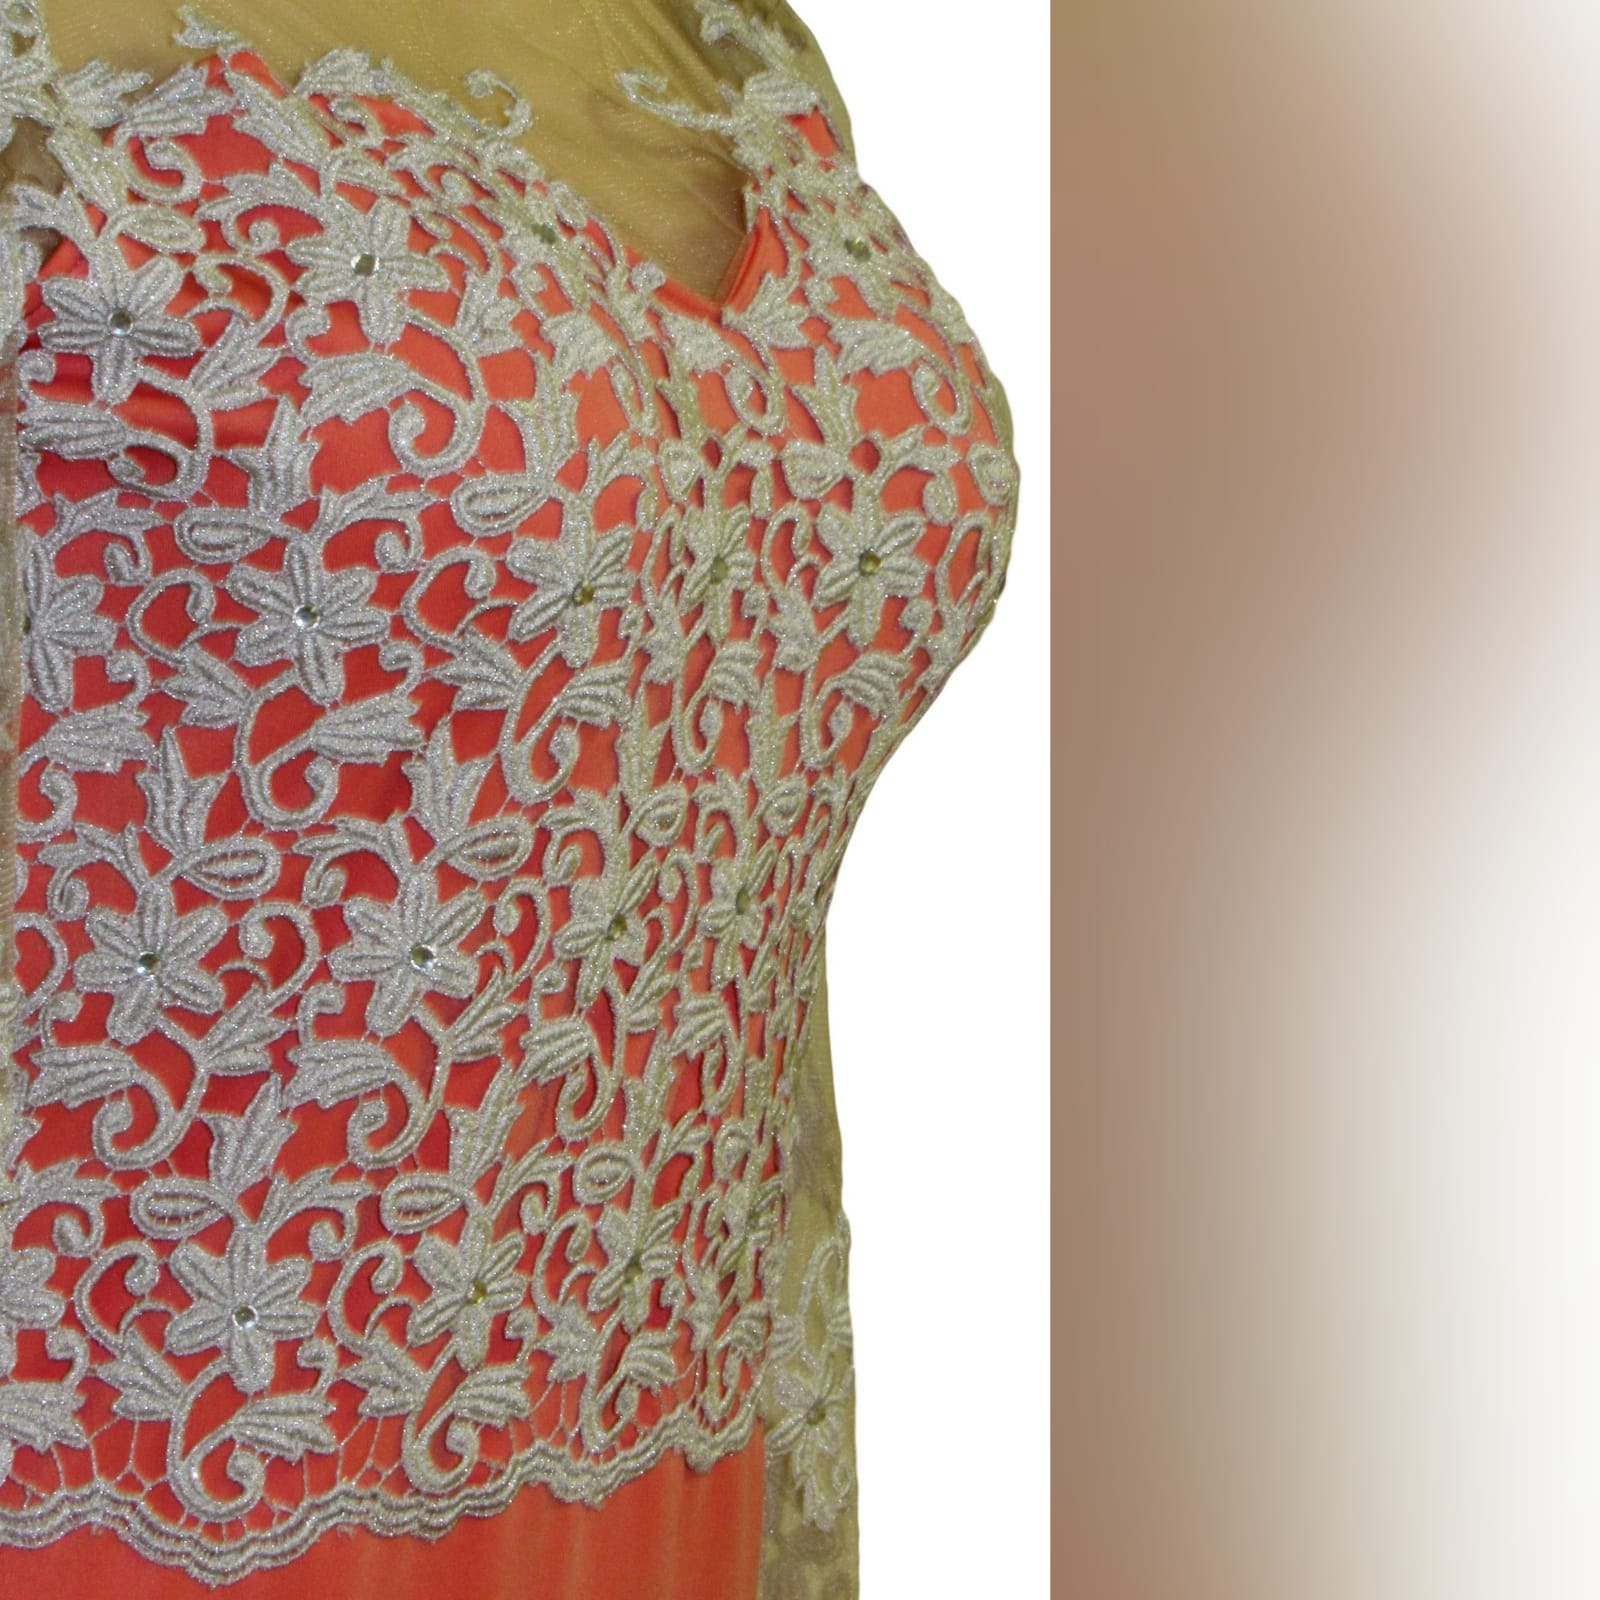 Bright coral and silver soft mermaid prom dress 8 bright coral and silver soft mermaid prom dress with a train. Bodice detailed in silver with an open heart shaped back and long illusion lace sleeves